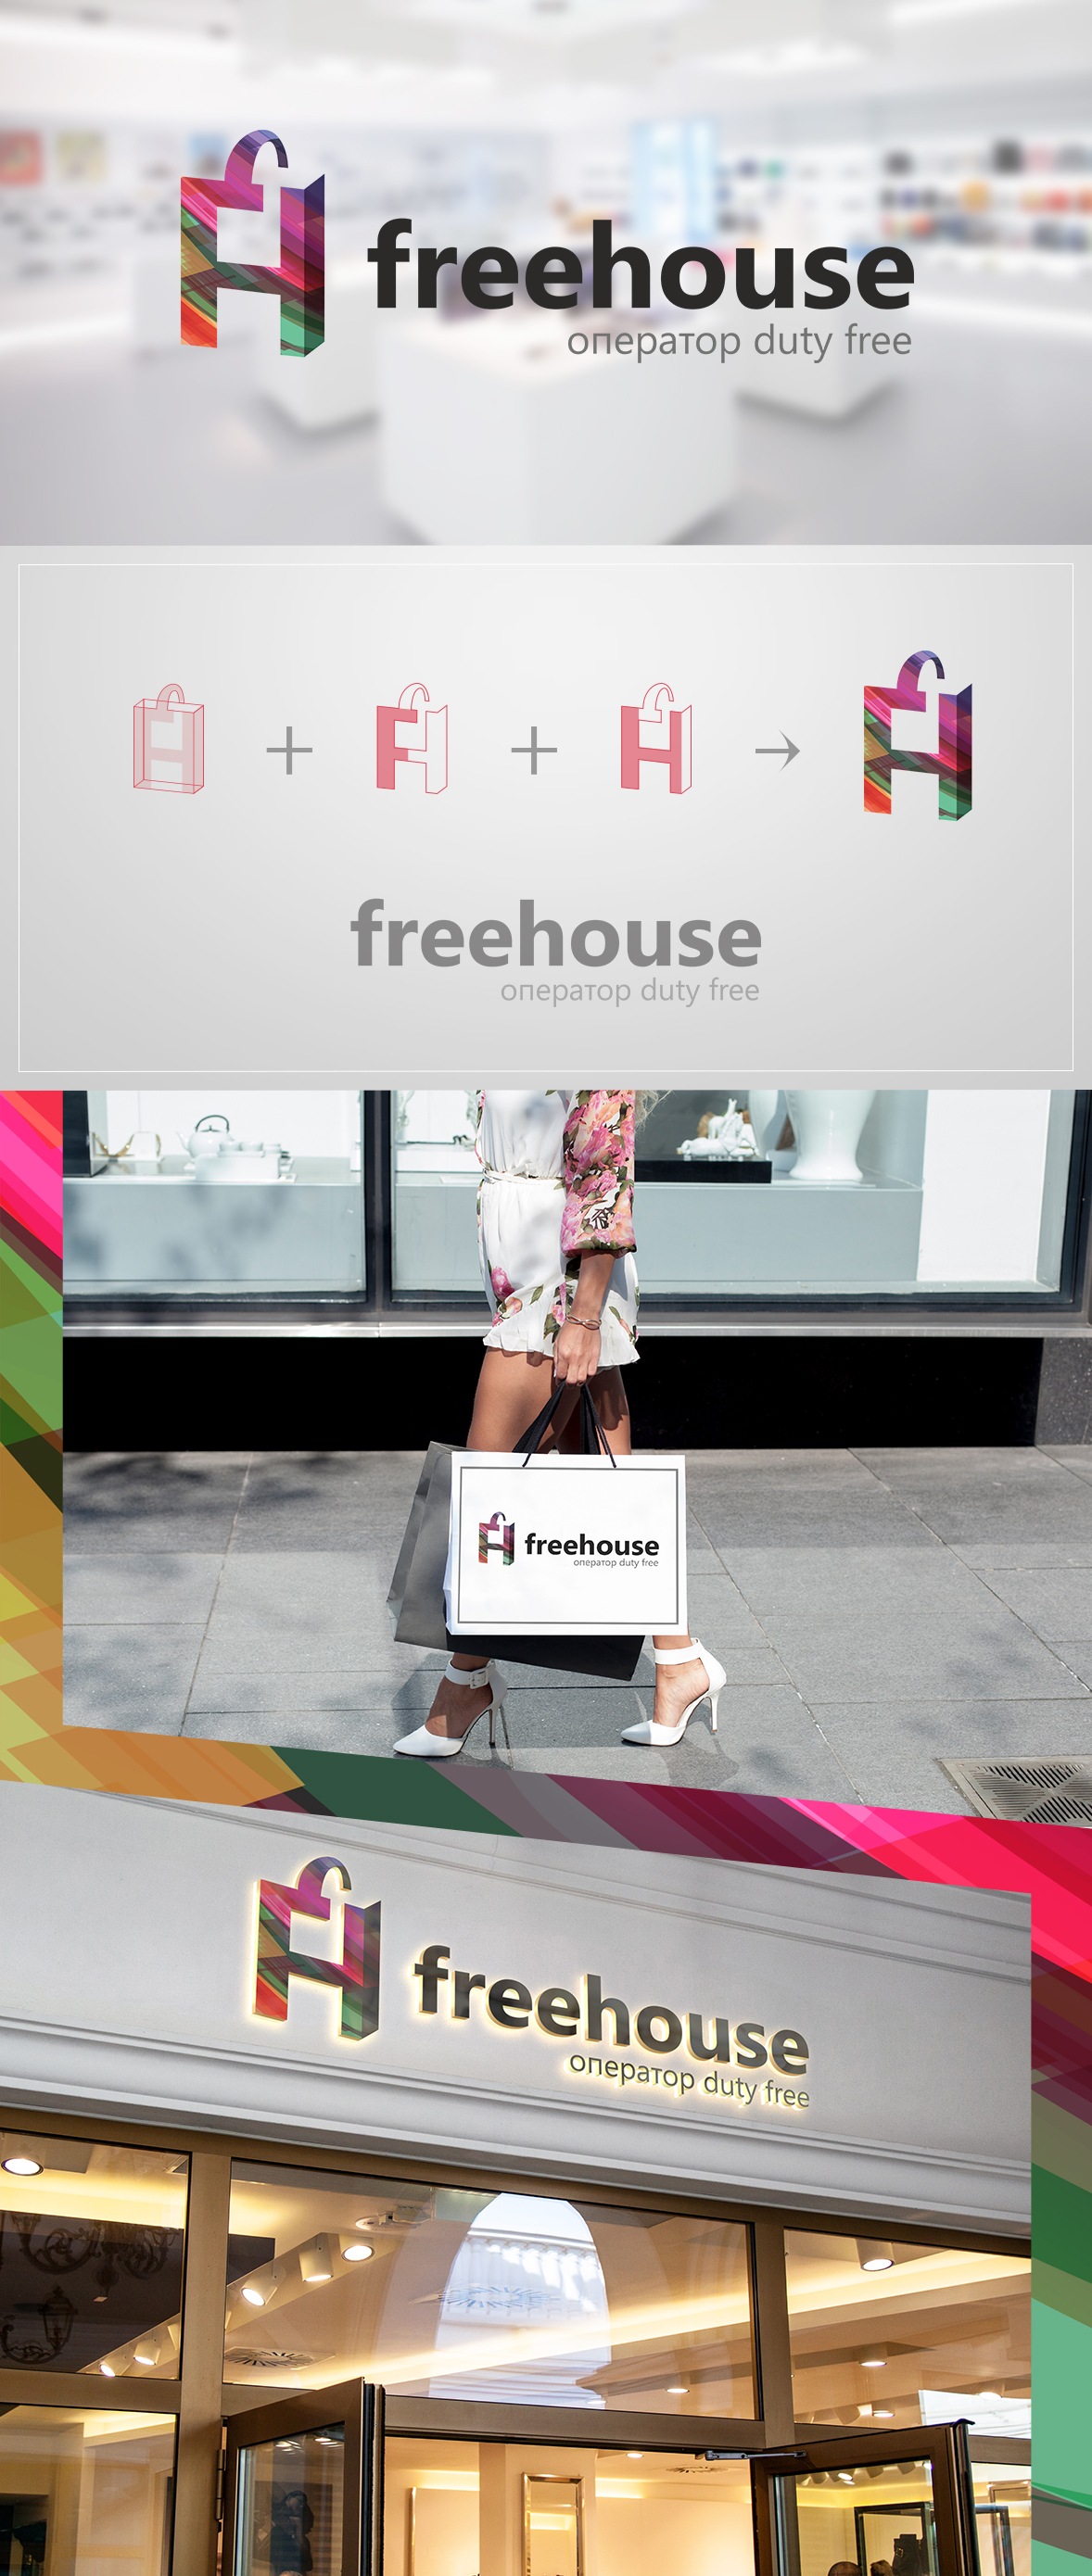 Freehouse Duty Free store